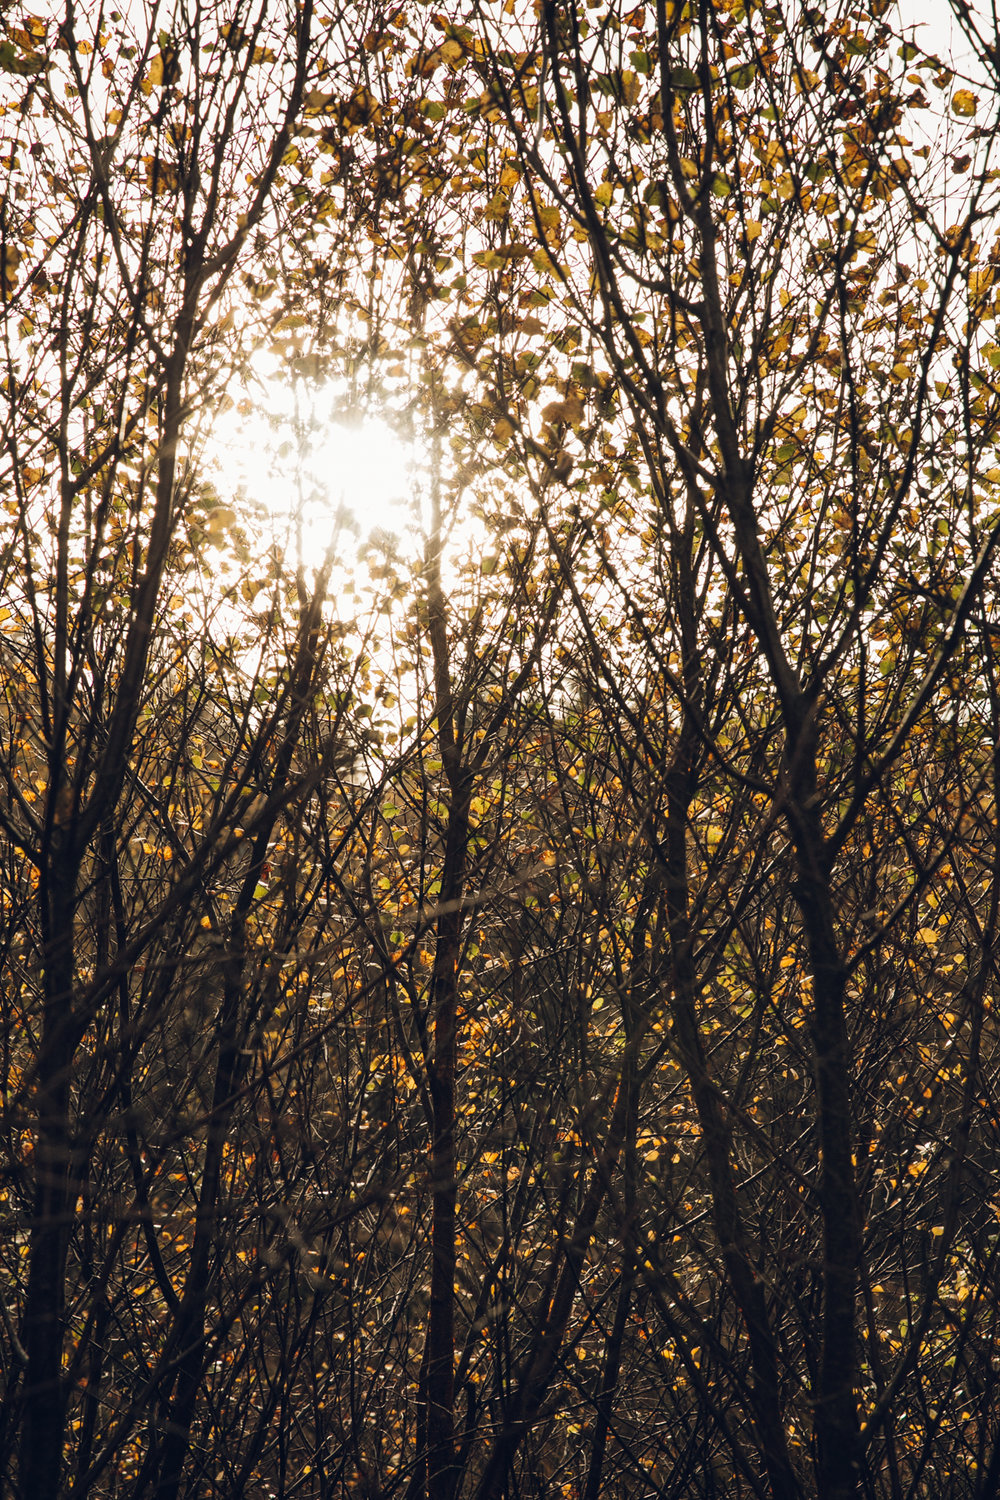 Autumn sunlight through the trees.